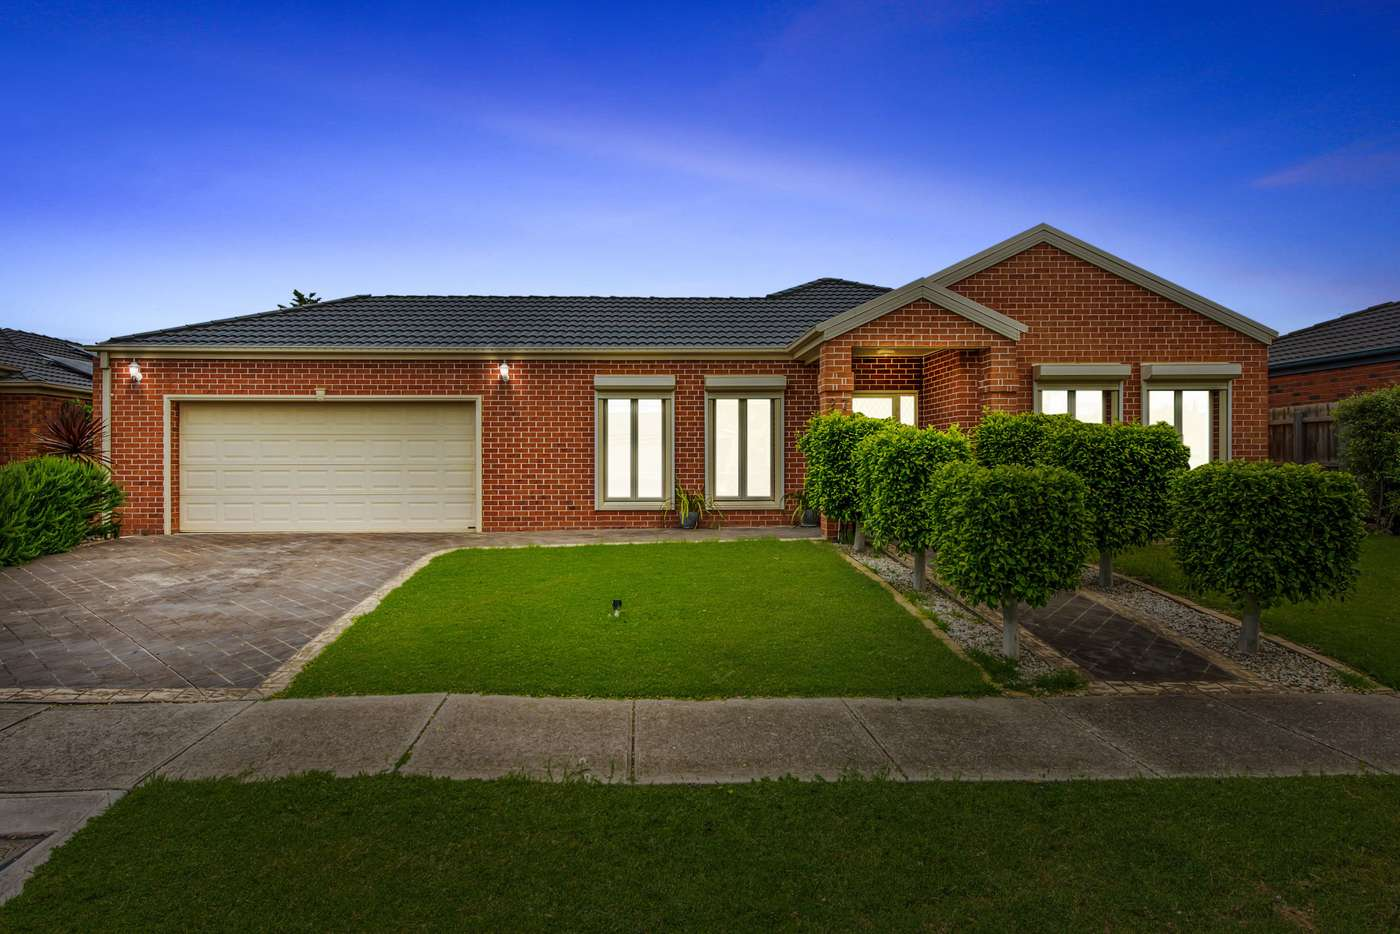 Main view of Homely house listing, 27 Taylors Hill Boulevard, Taylors Hill VIC 3037